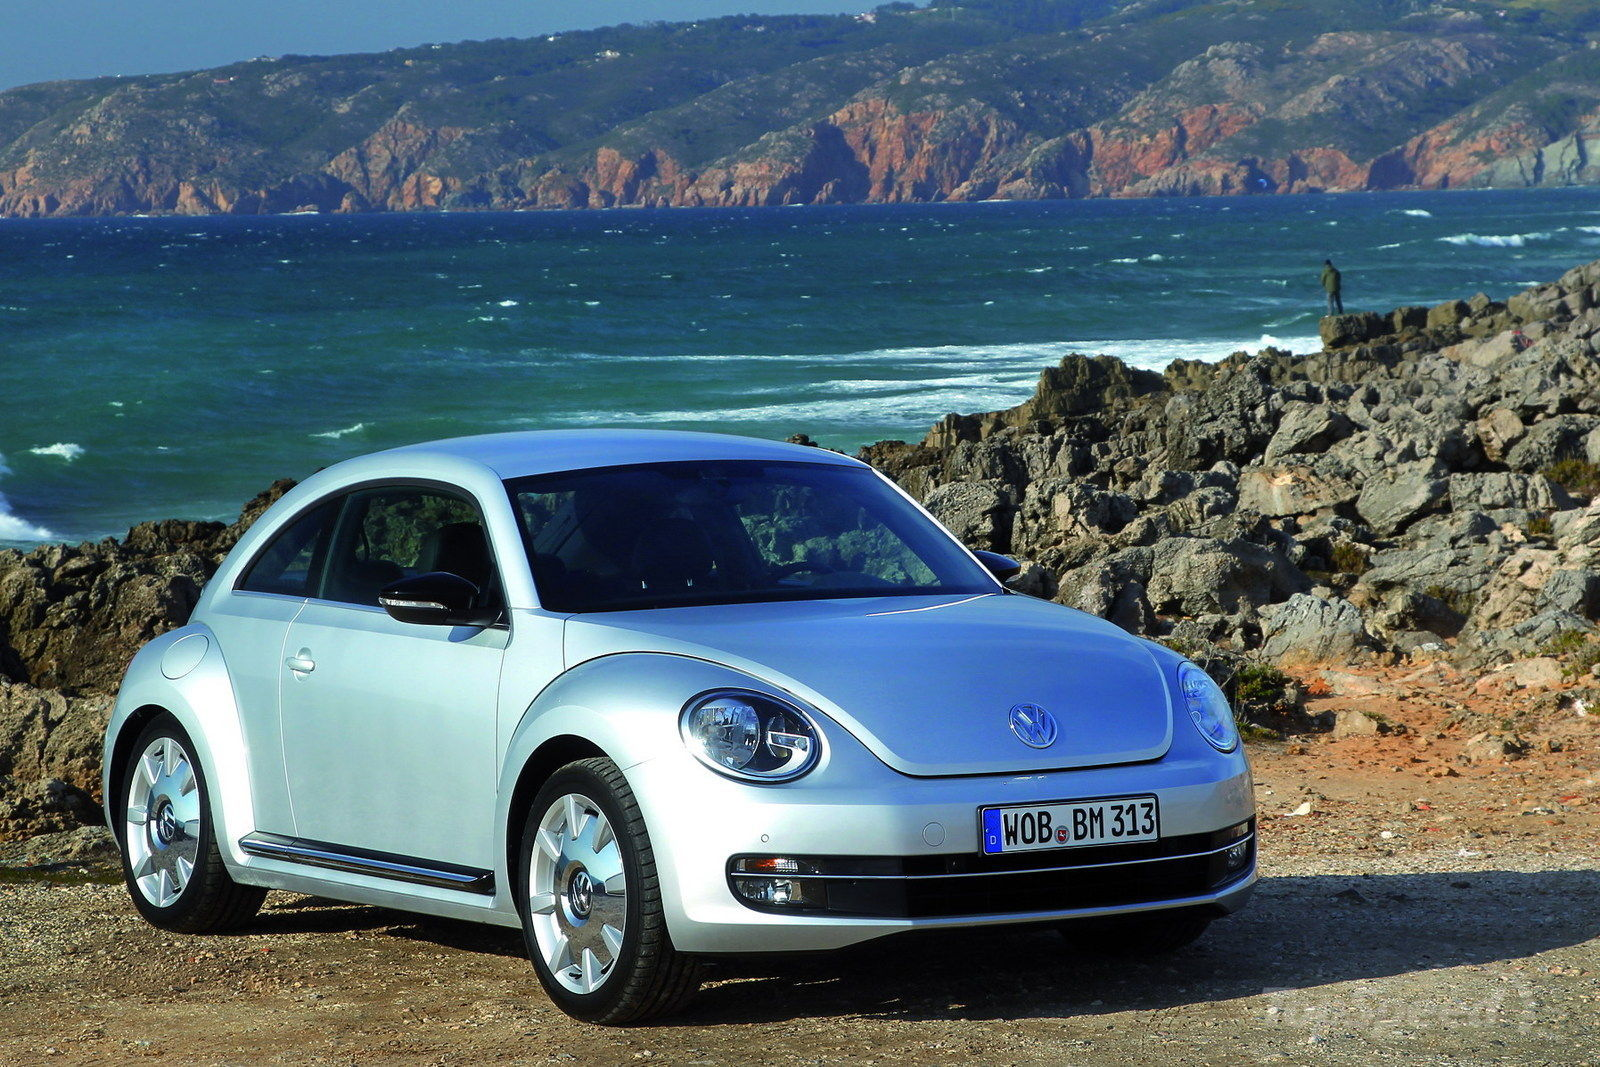 2012 VW Beetle Commercial: Relax Guys, It's Okay To Drive